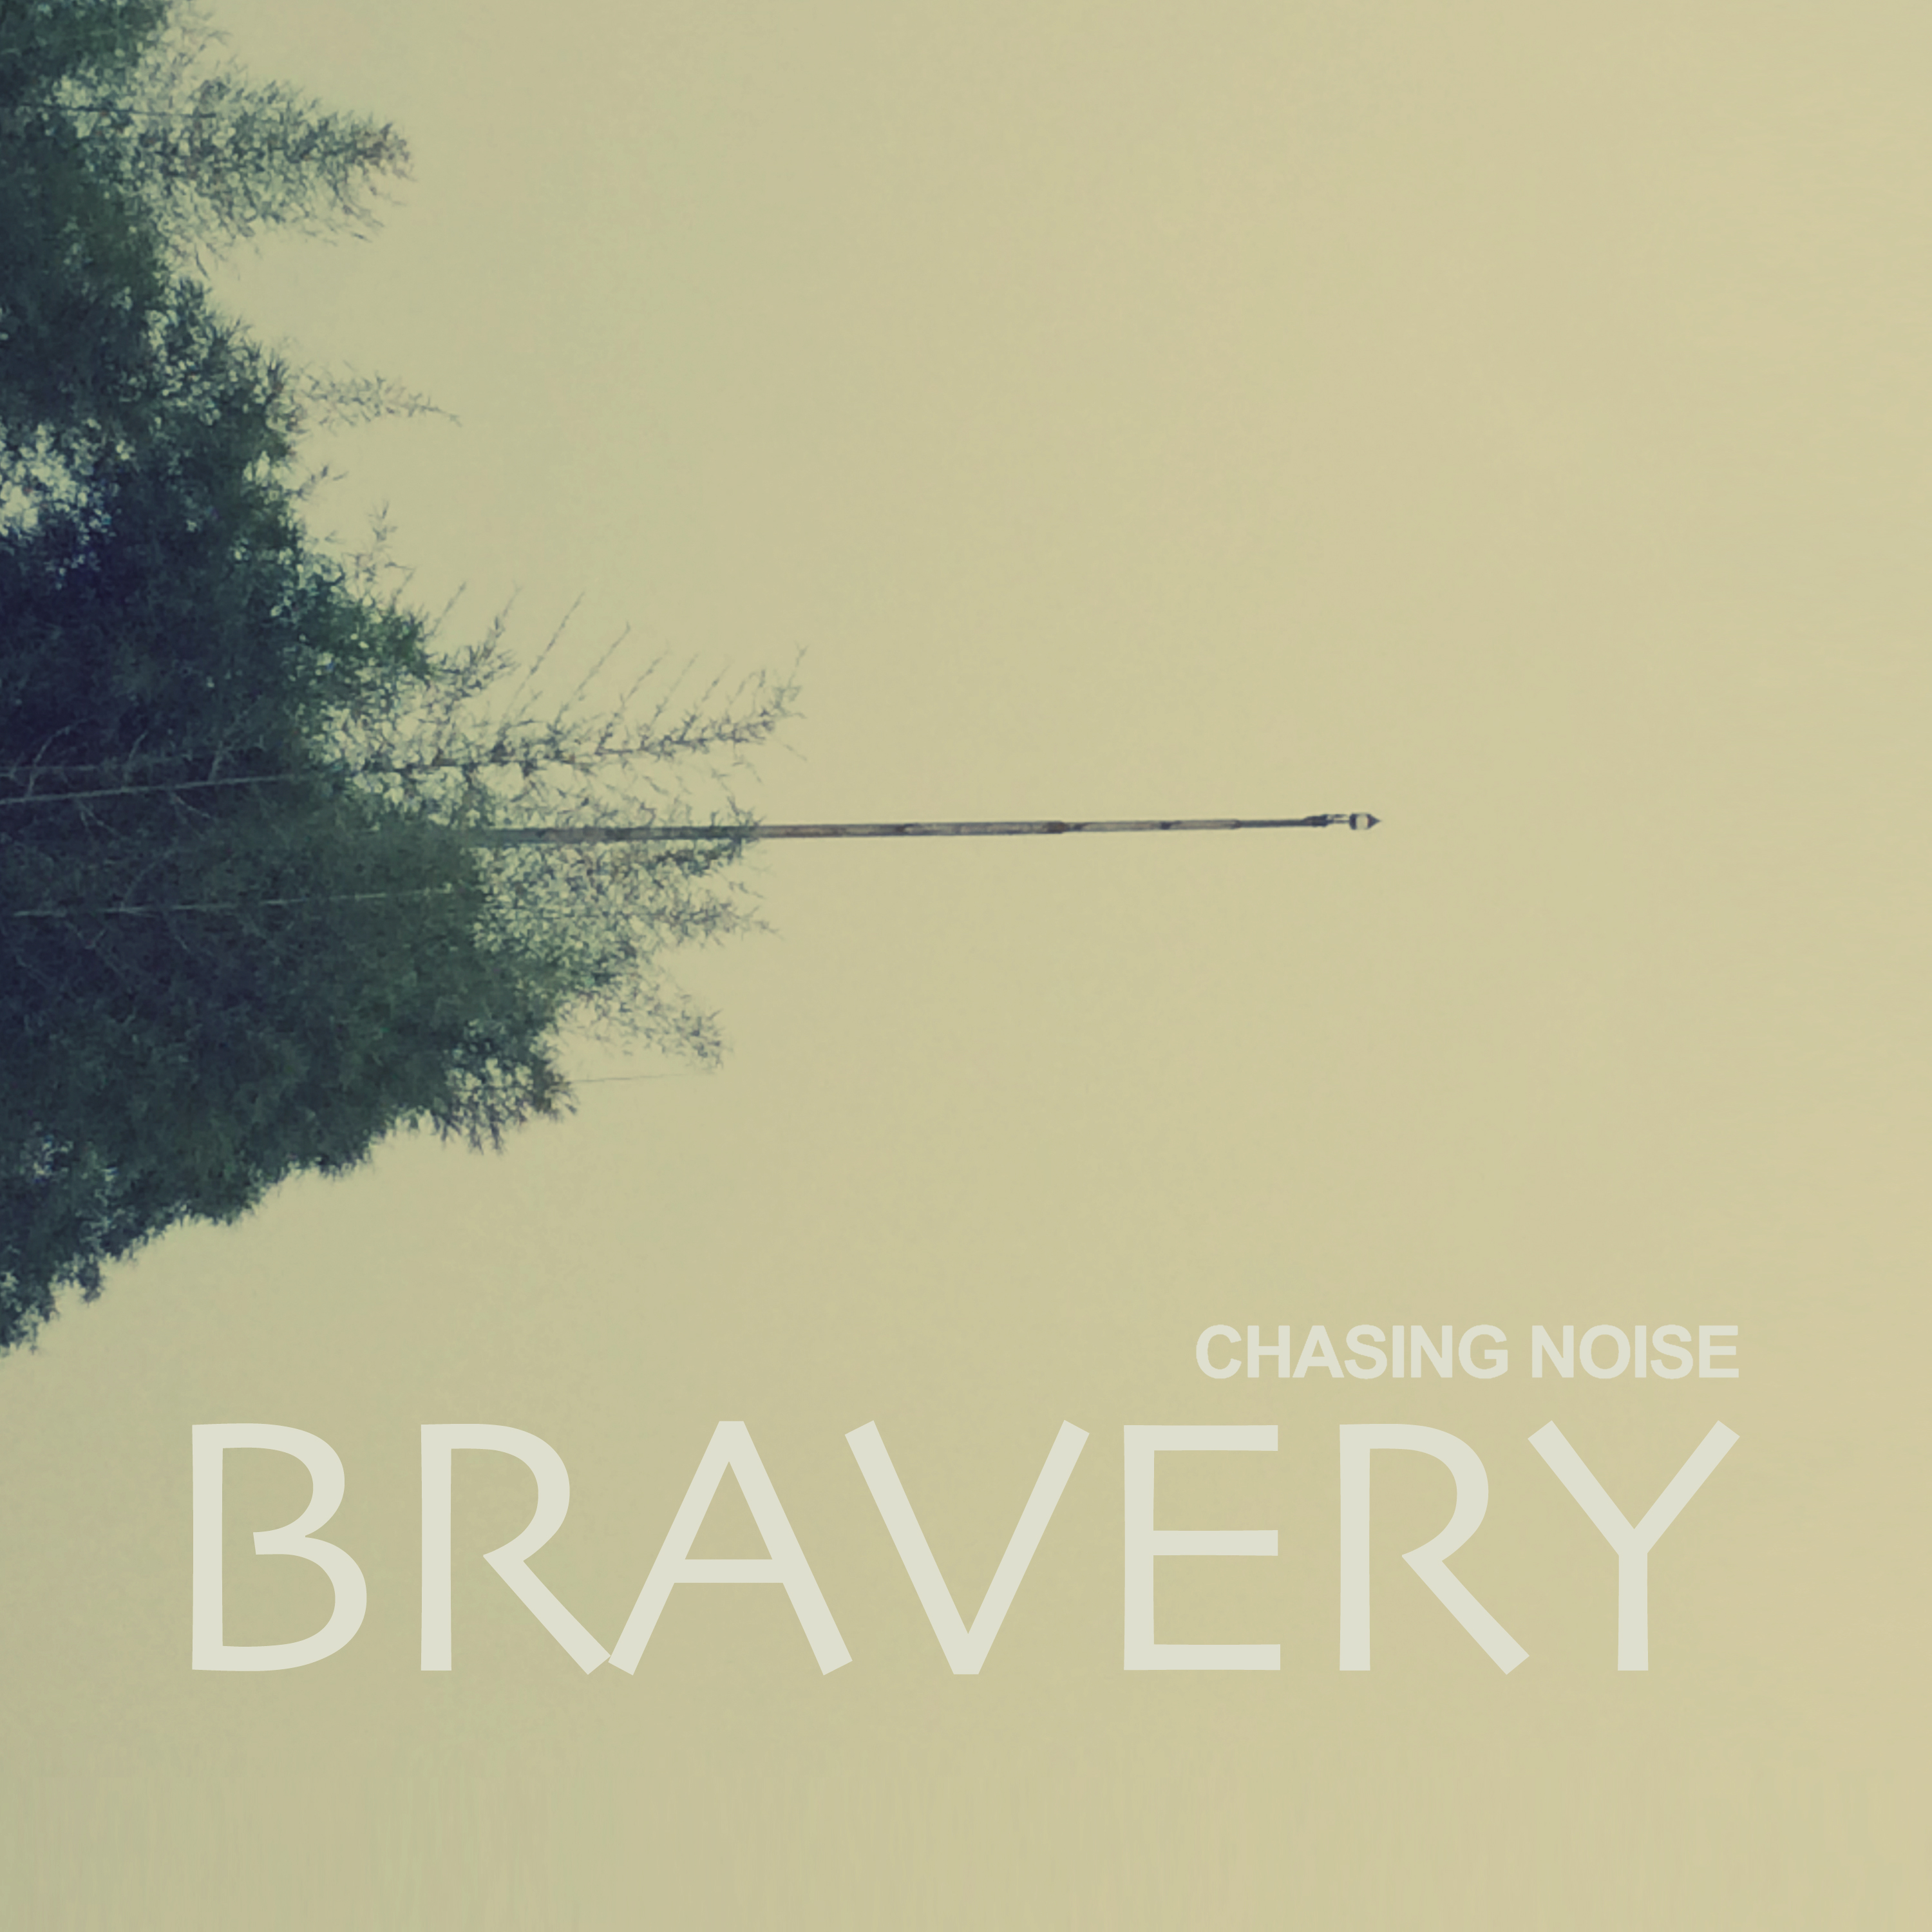 Bravery by Chasing Noise